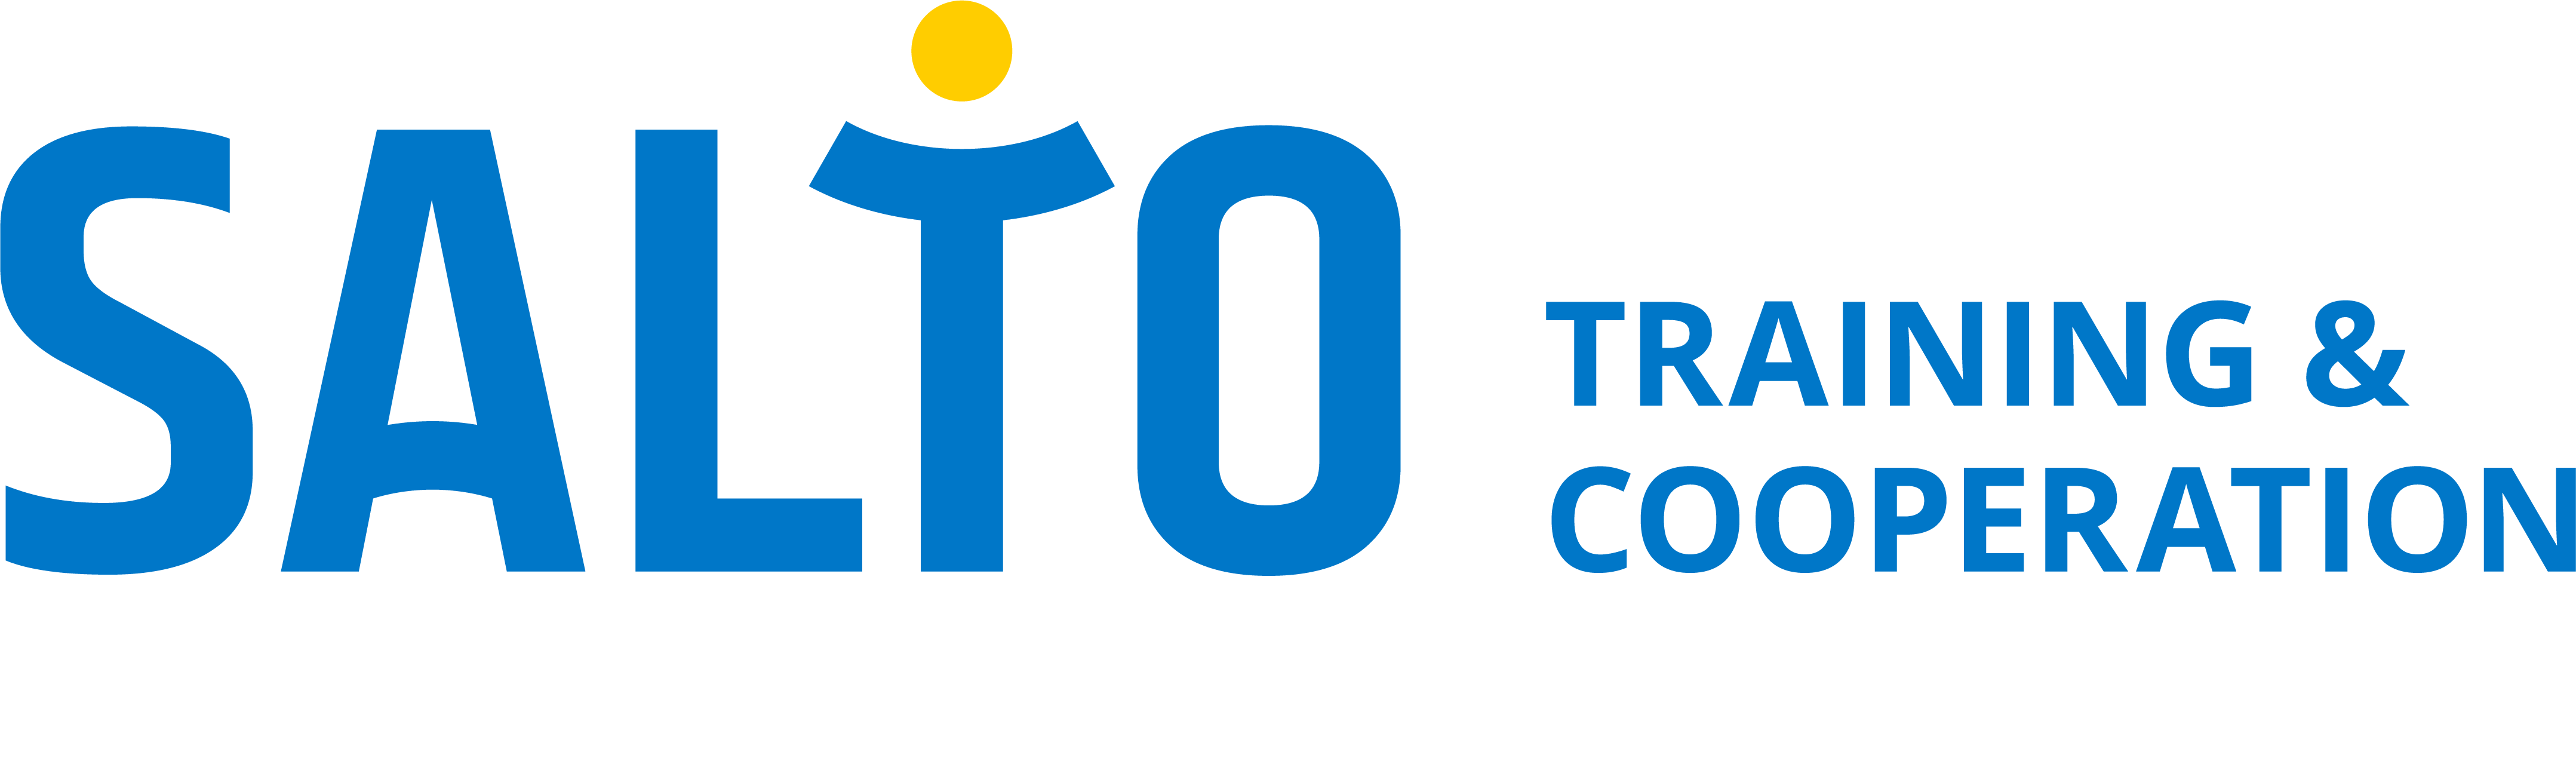 logo_salto-youth_training-cooperation-resource-center